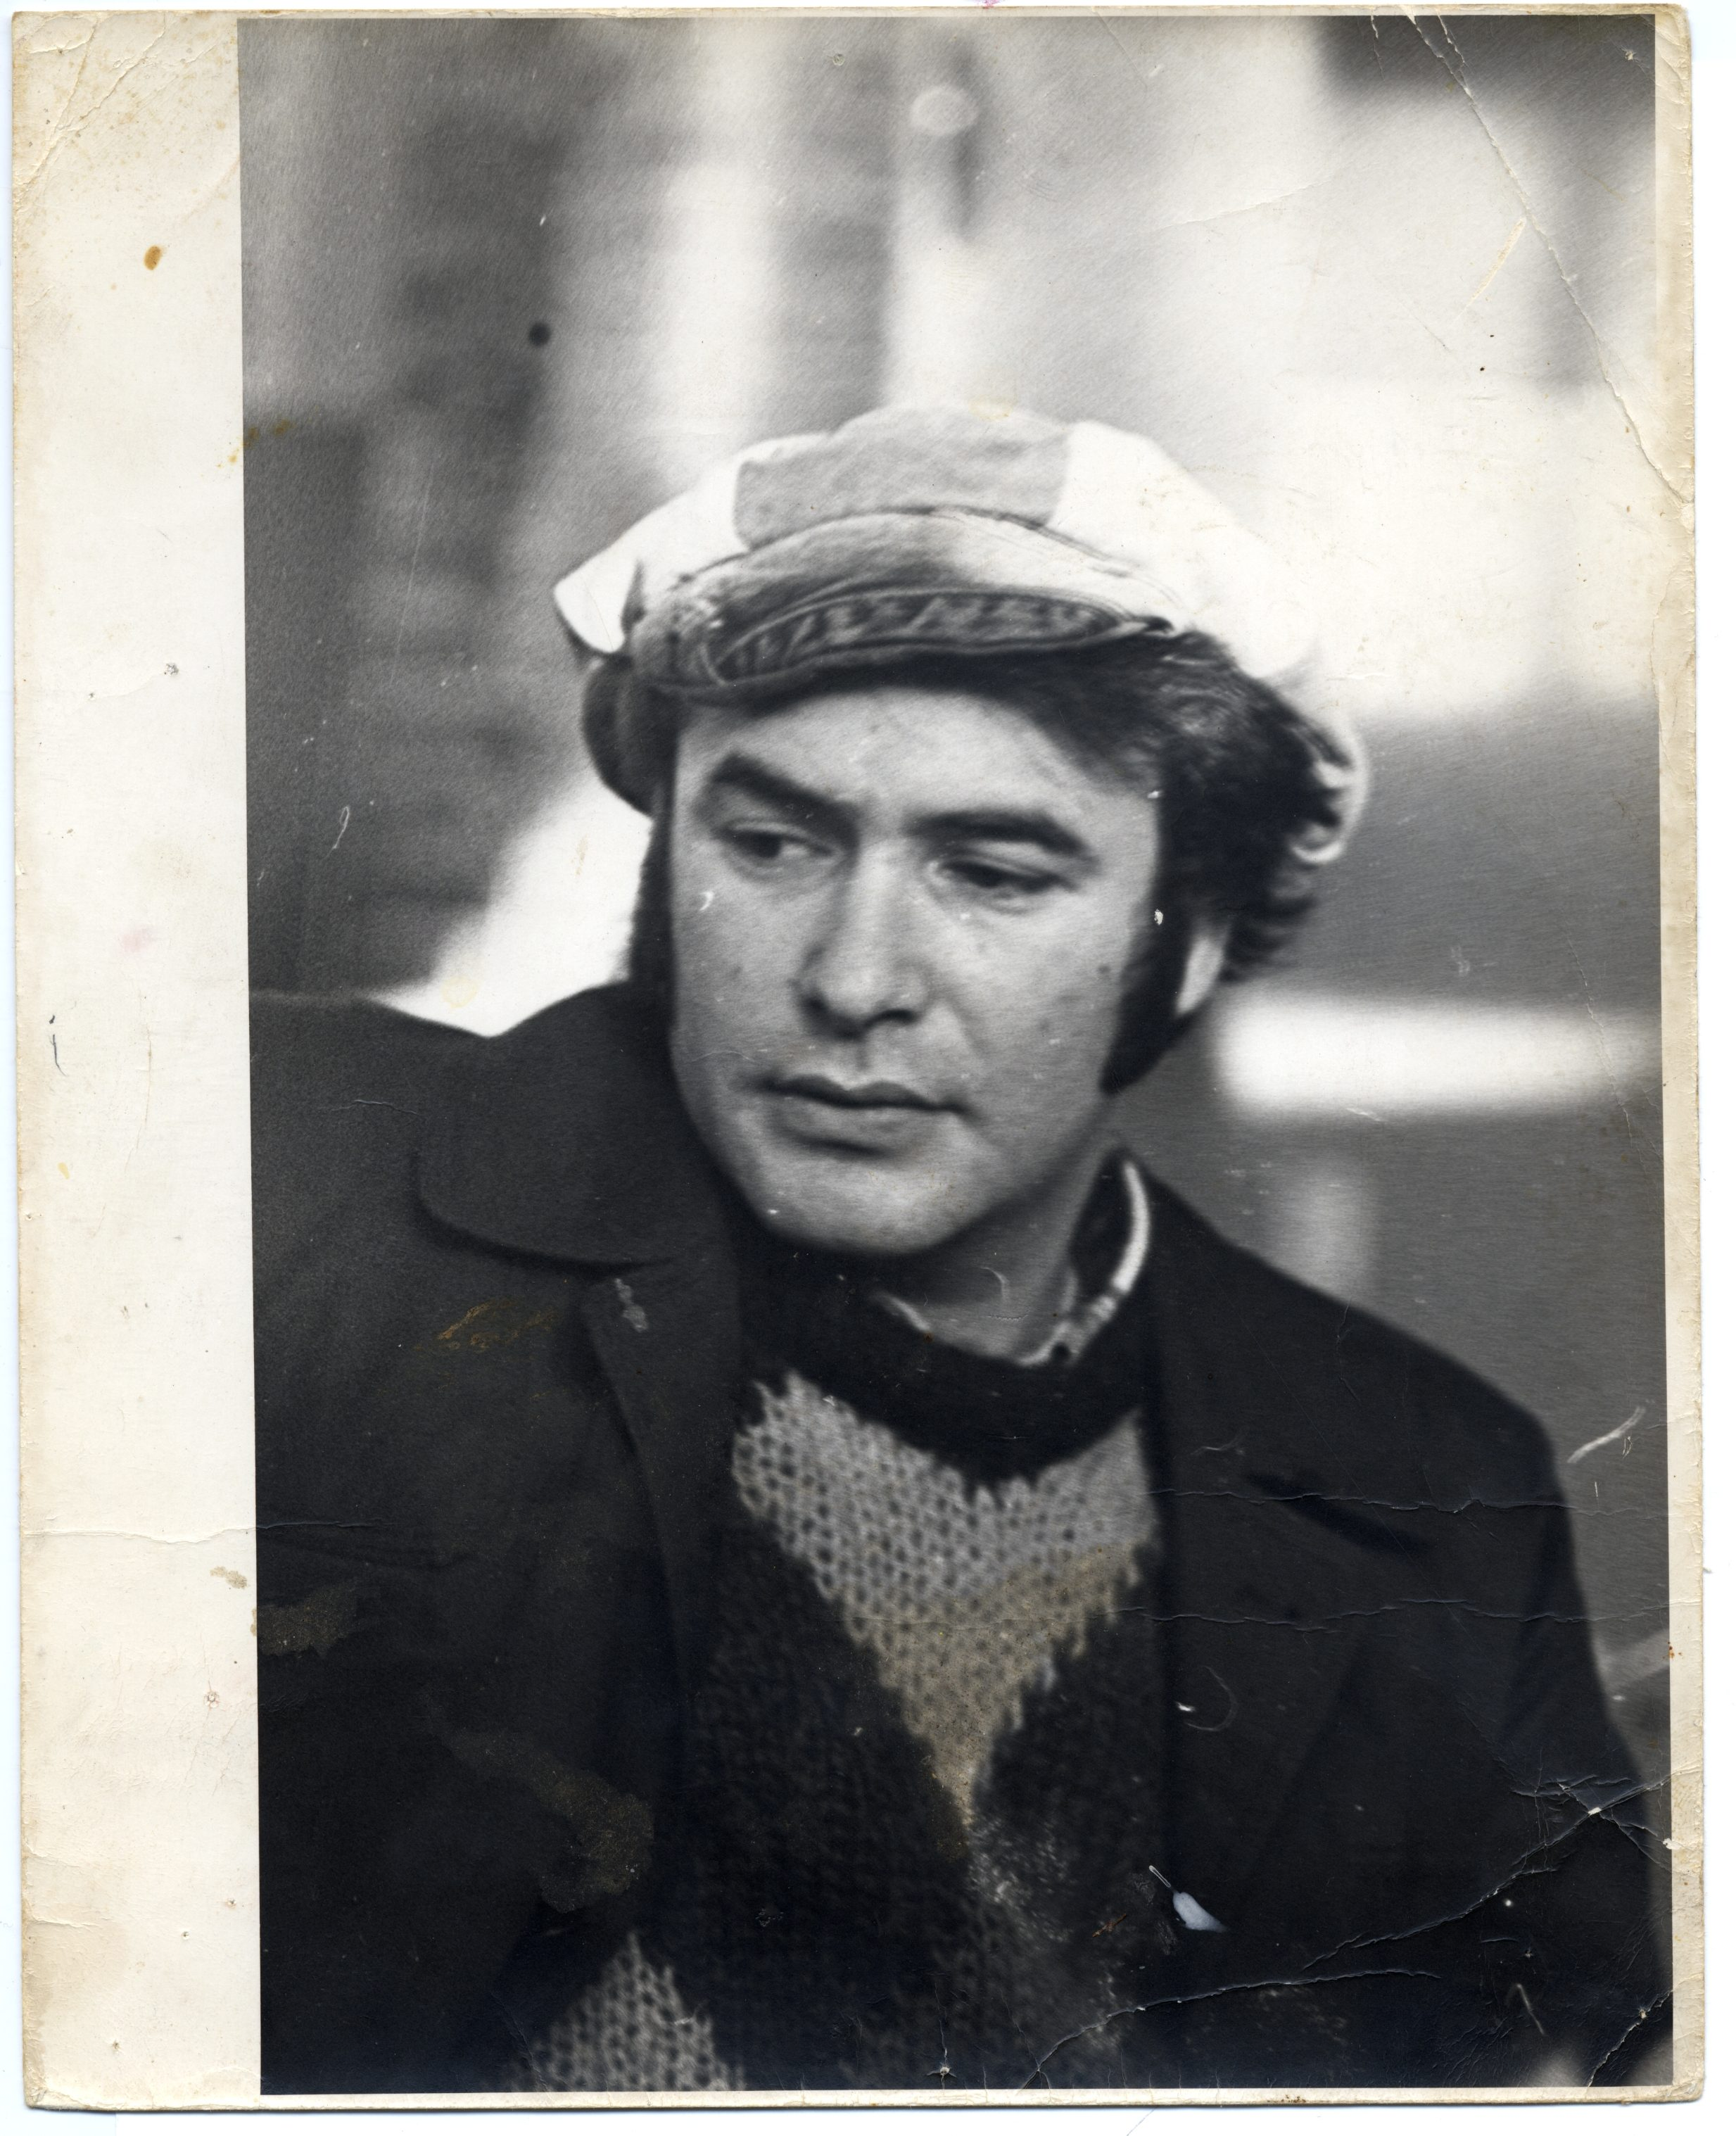 man with peat coat and hat